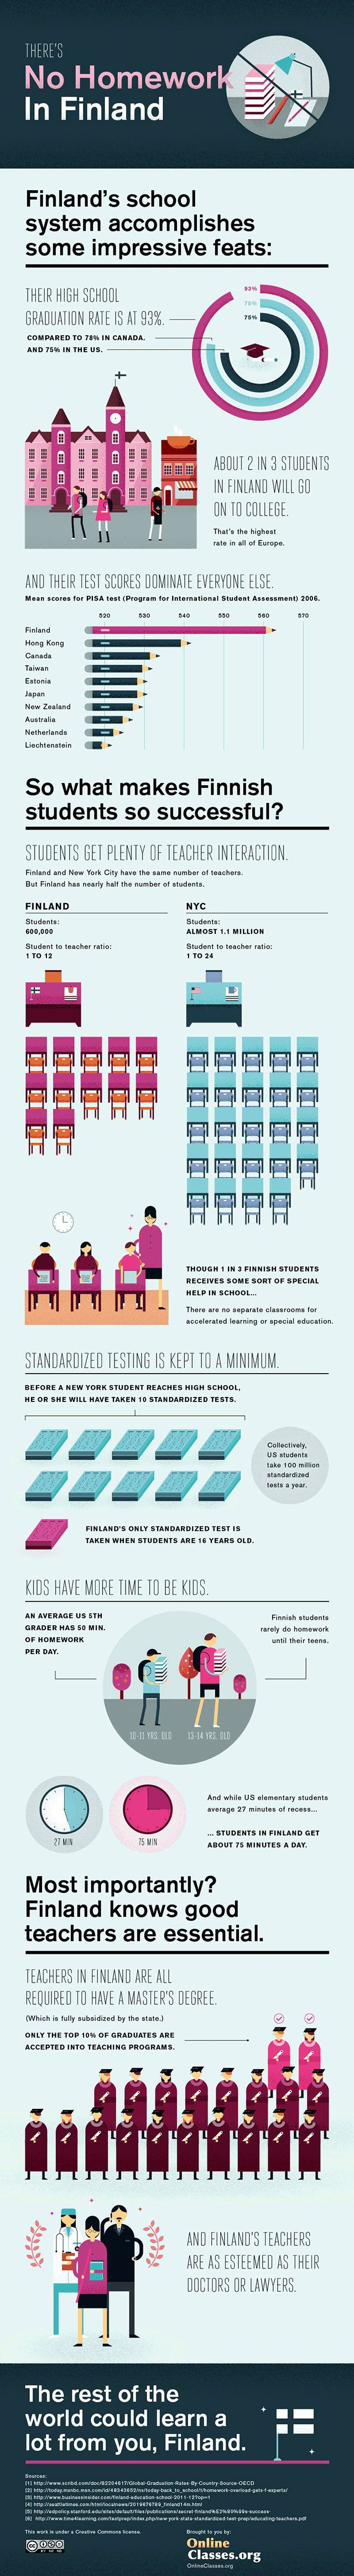 Finland's School System - Infographic Repinning not for the teacher $ but because I see issues with our schools. Smaller classes=more precise specialized teaching and increase pe and differentiation.  And really, slow down the HW! Amen. Teachers if you don't look at it, neither should they. JA